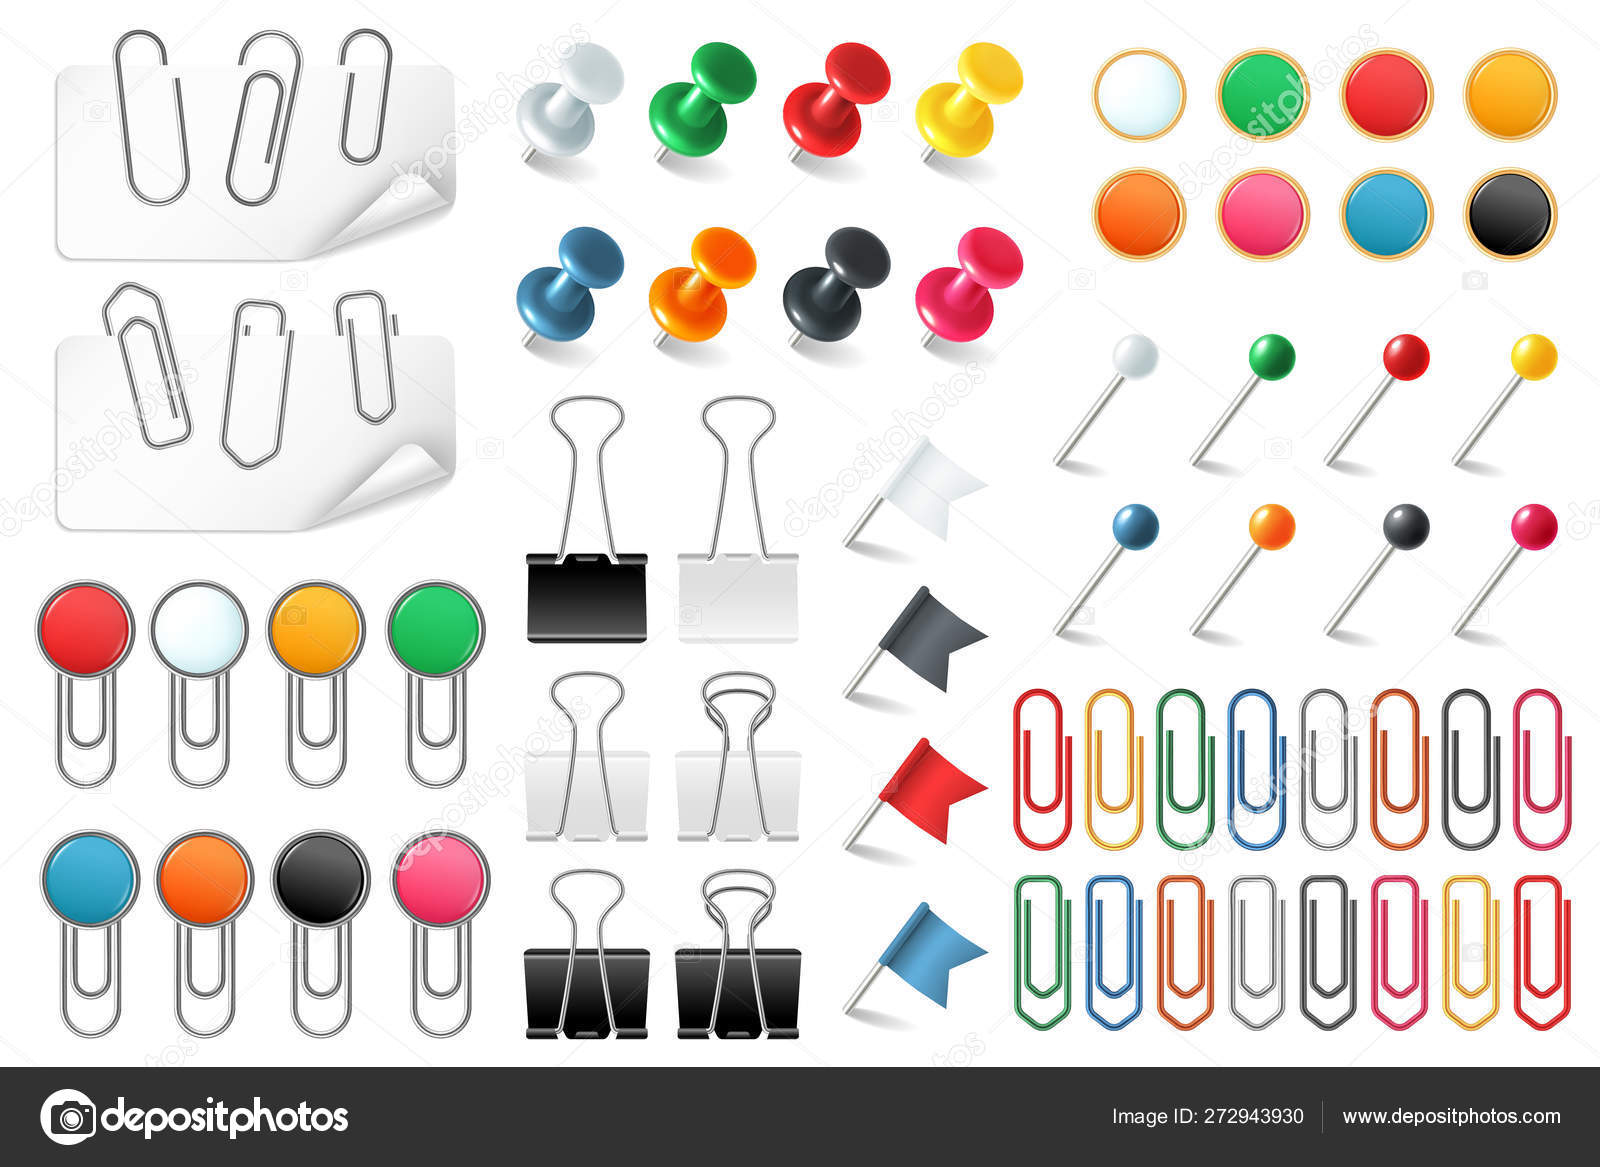 Pins paper clips. Push pins fasteners staple tack pin colored ...